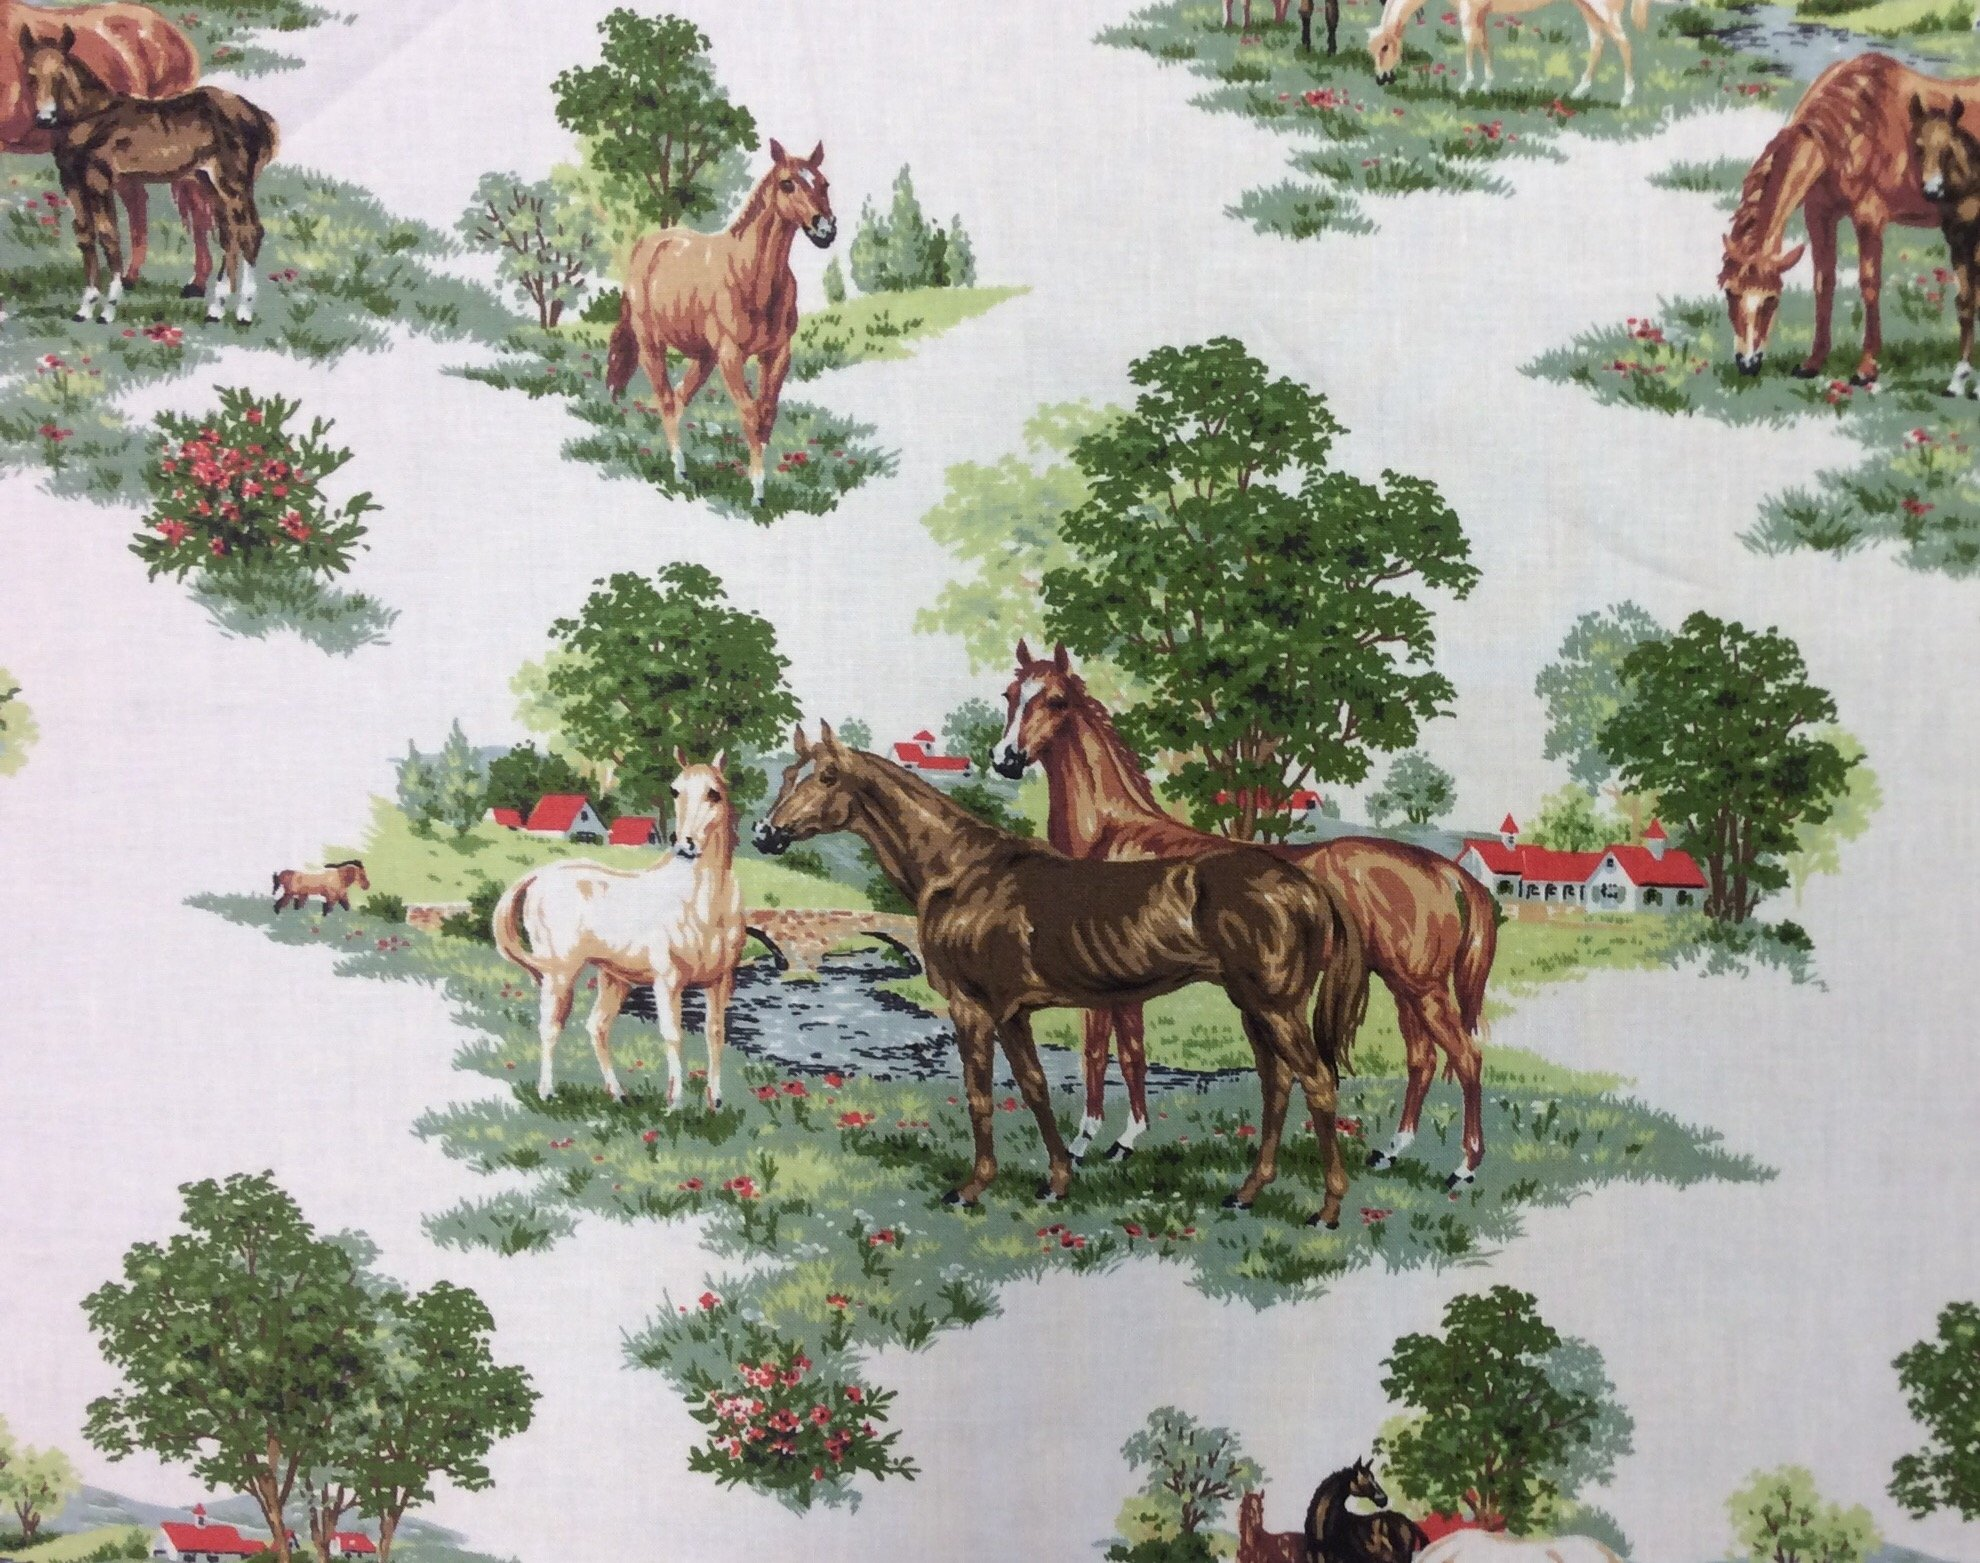 Pure Bred Horses Pasture Farm Thoroughbred Racing Kentucky Derby Preakness Belmont Cotton Quilt Fabric MO125